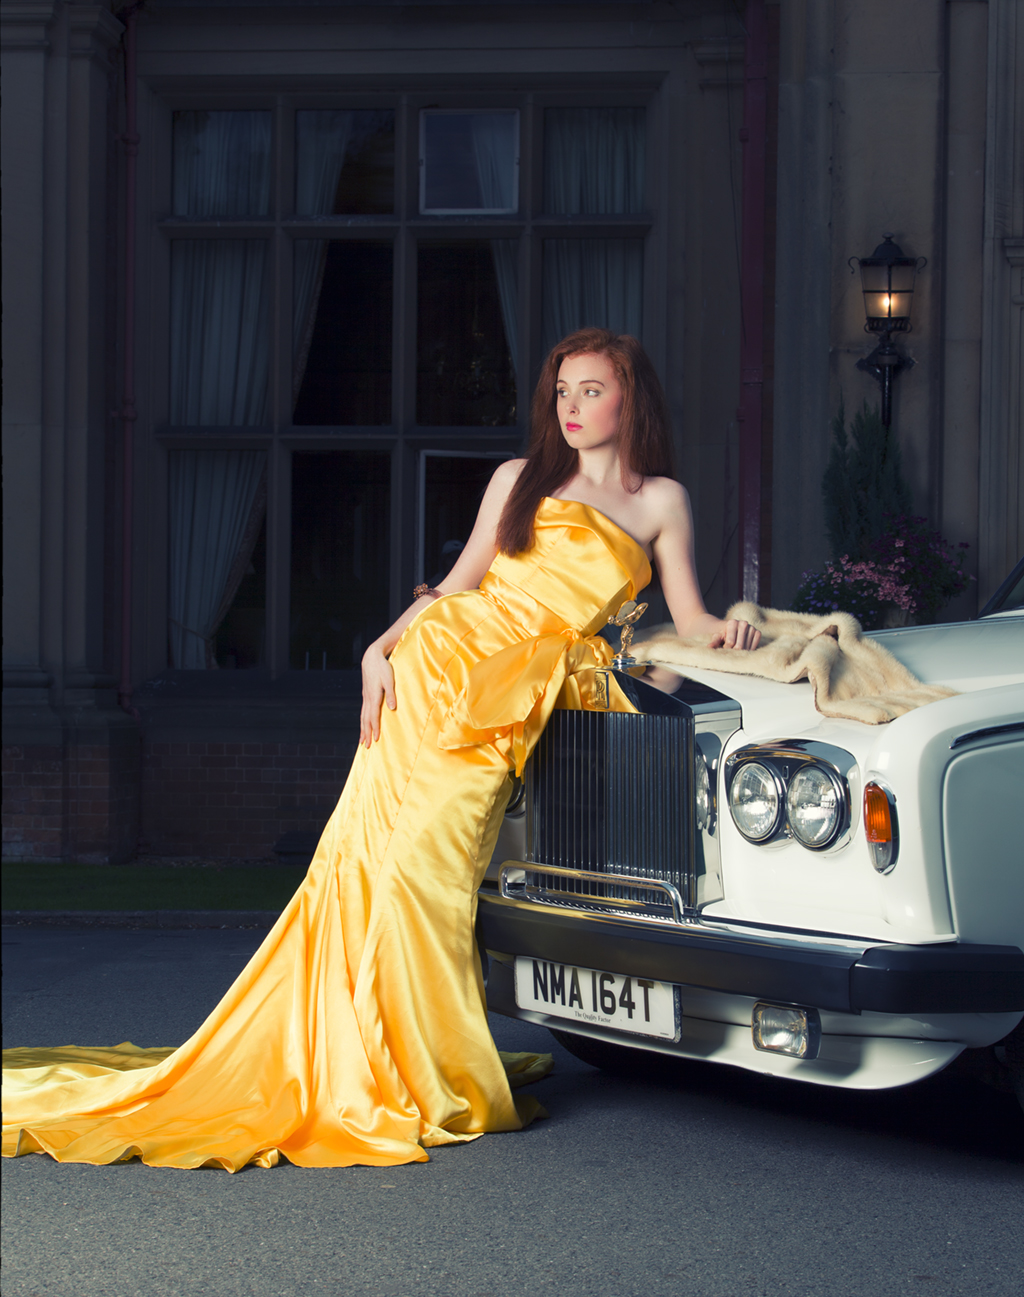 luxurious gold fall of the dress and the red of the models hair drape over a Rolls Royce